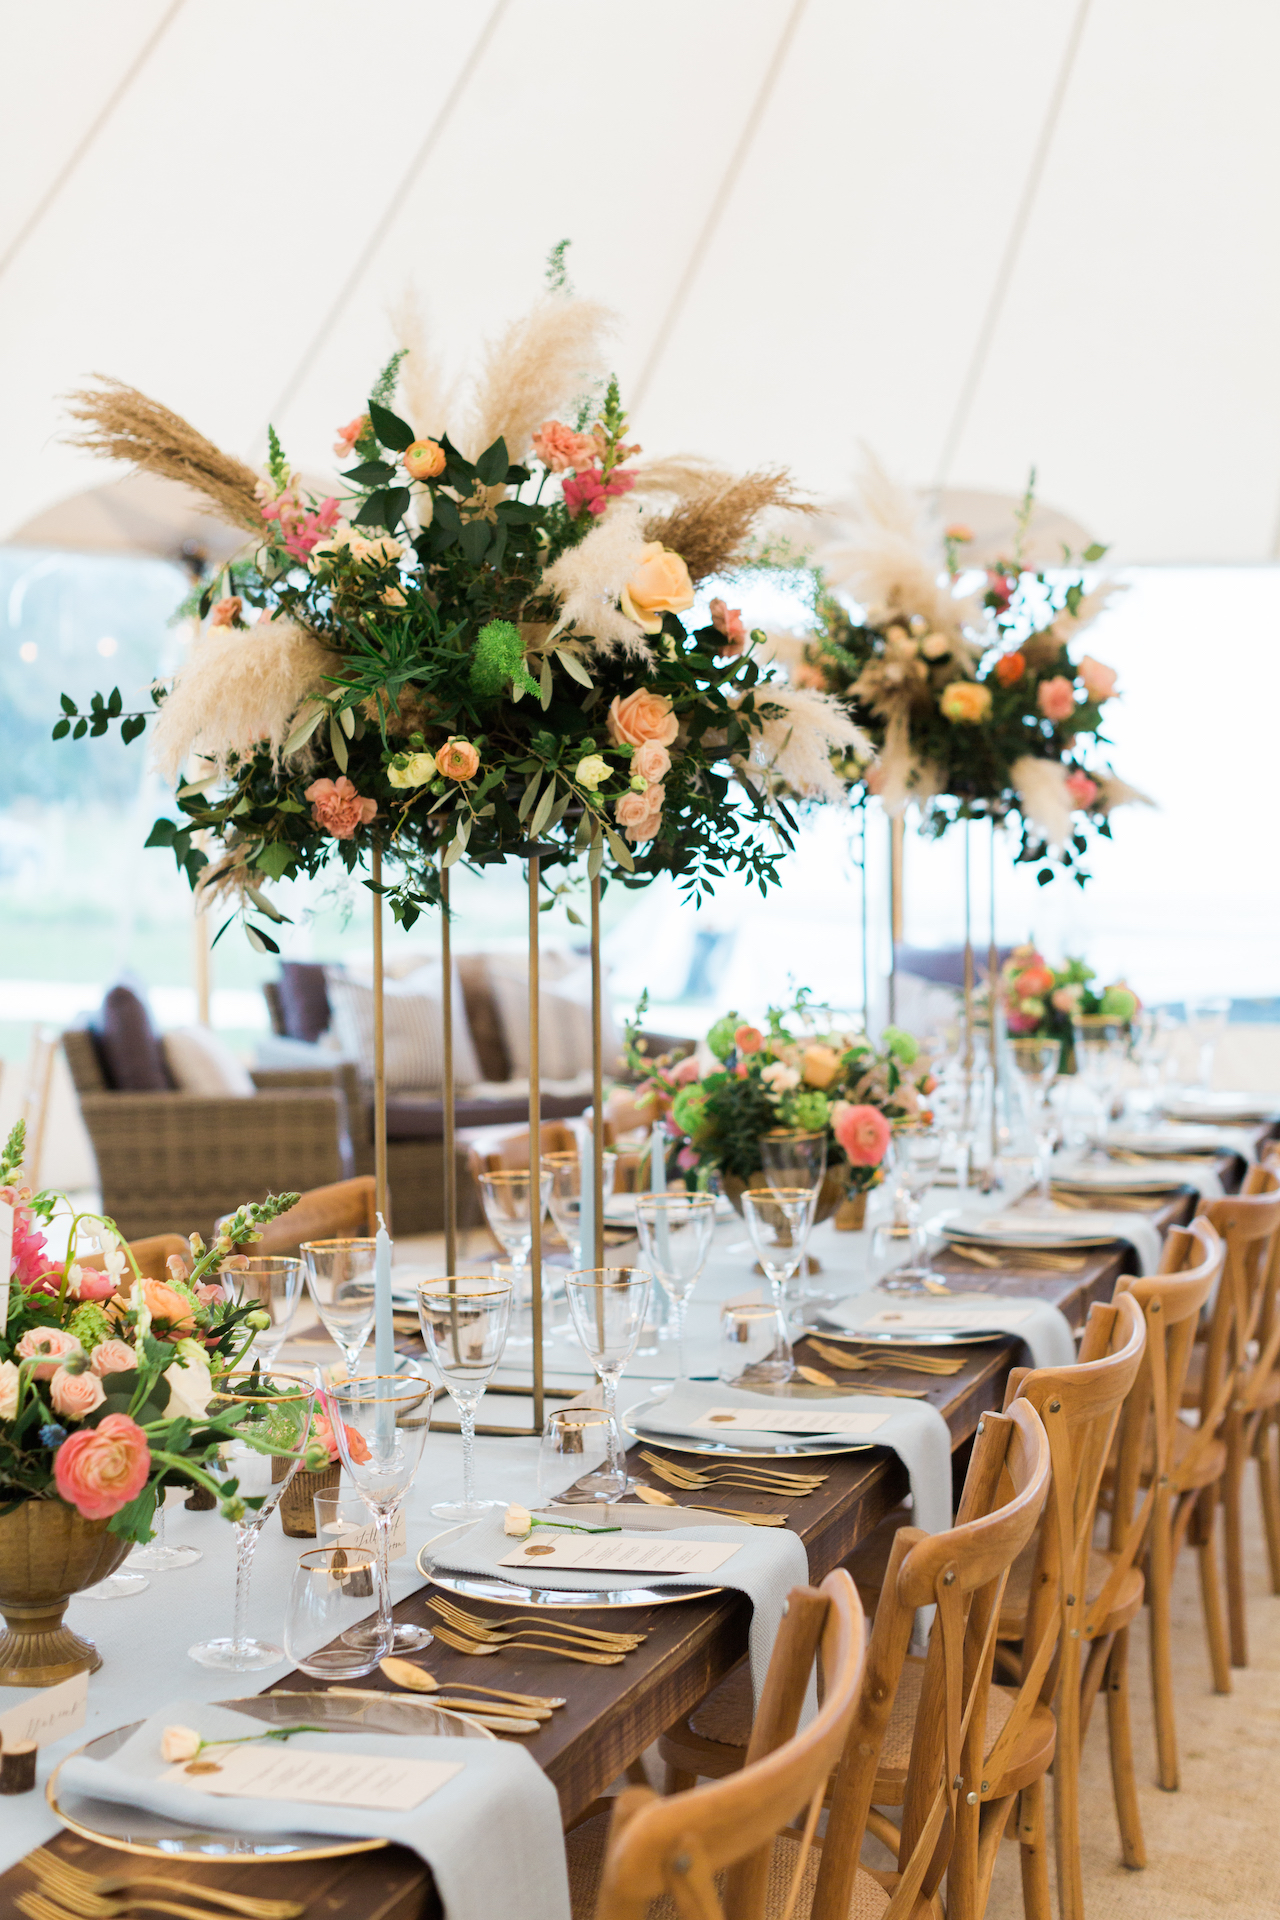 PapaKåta Spring Open Weekend Sperry Tent captured by Lucy Davenport Photography: Cross Back Chairs & Farmhouse Tables